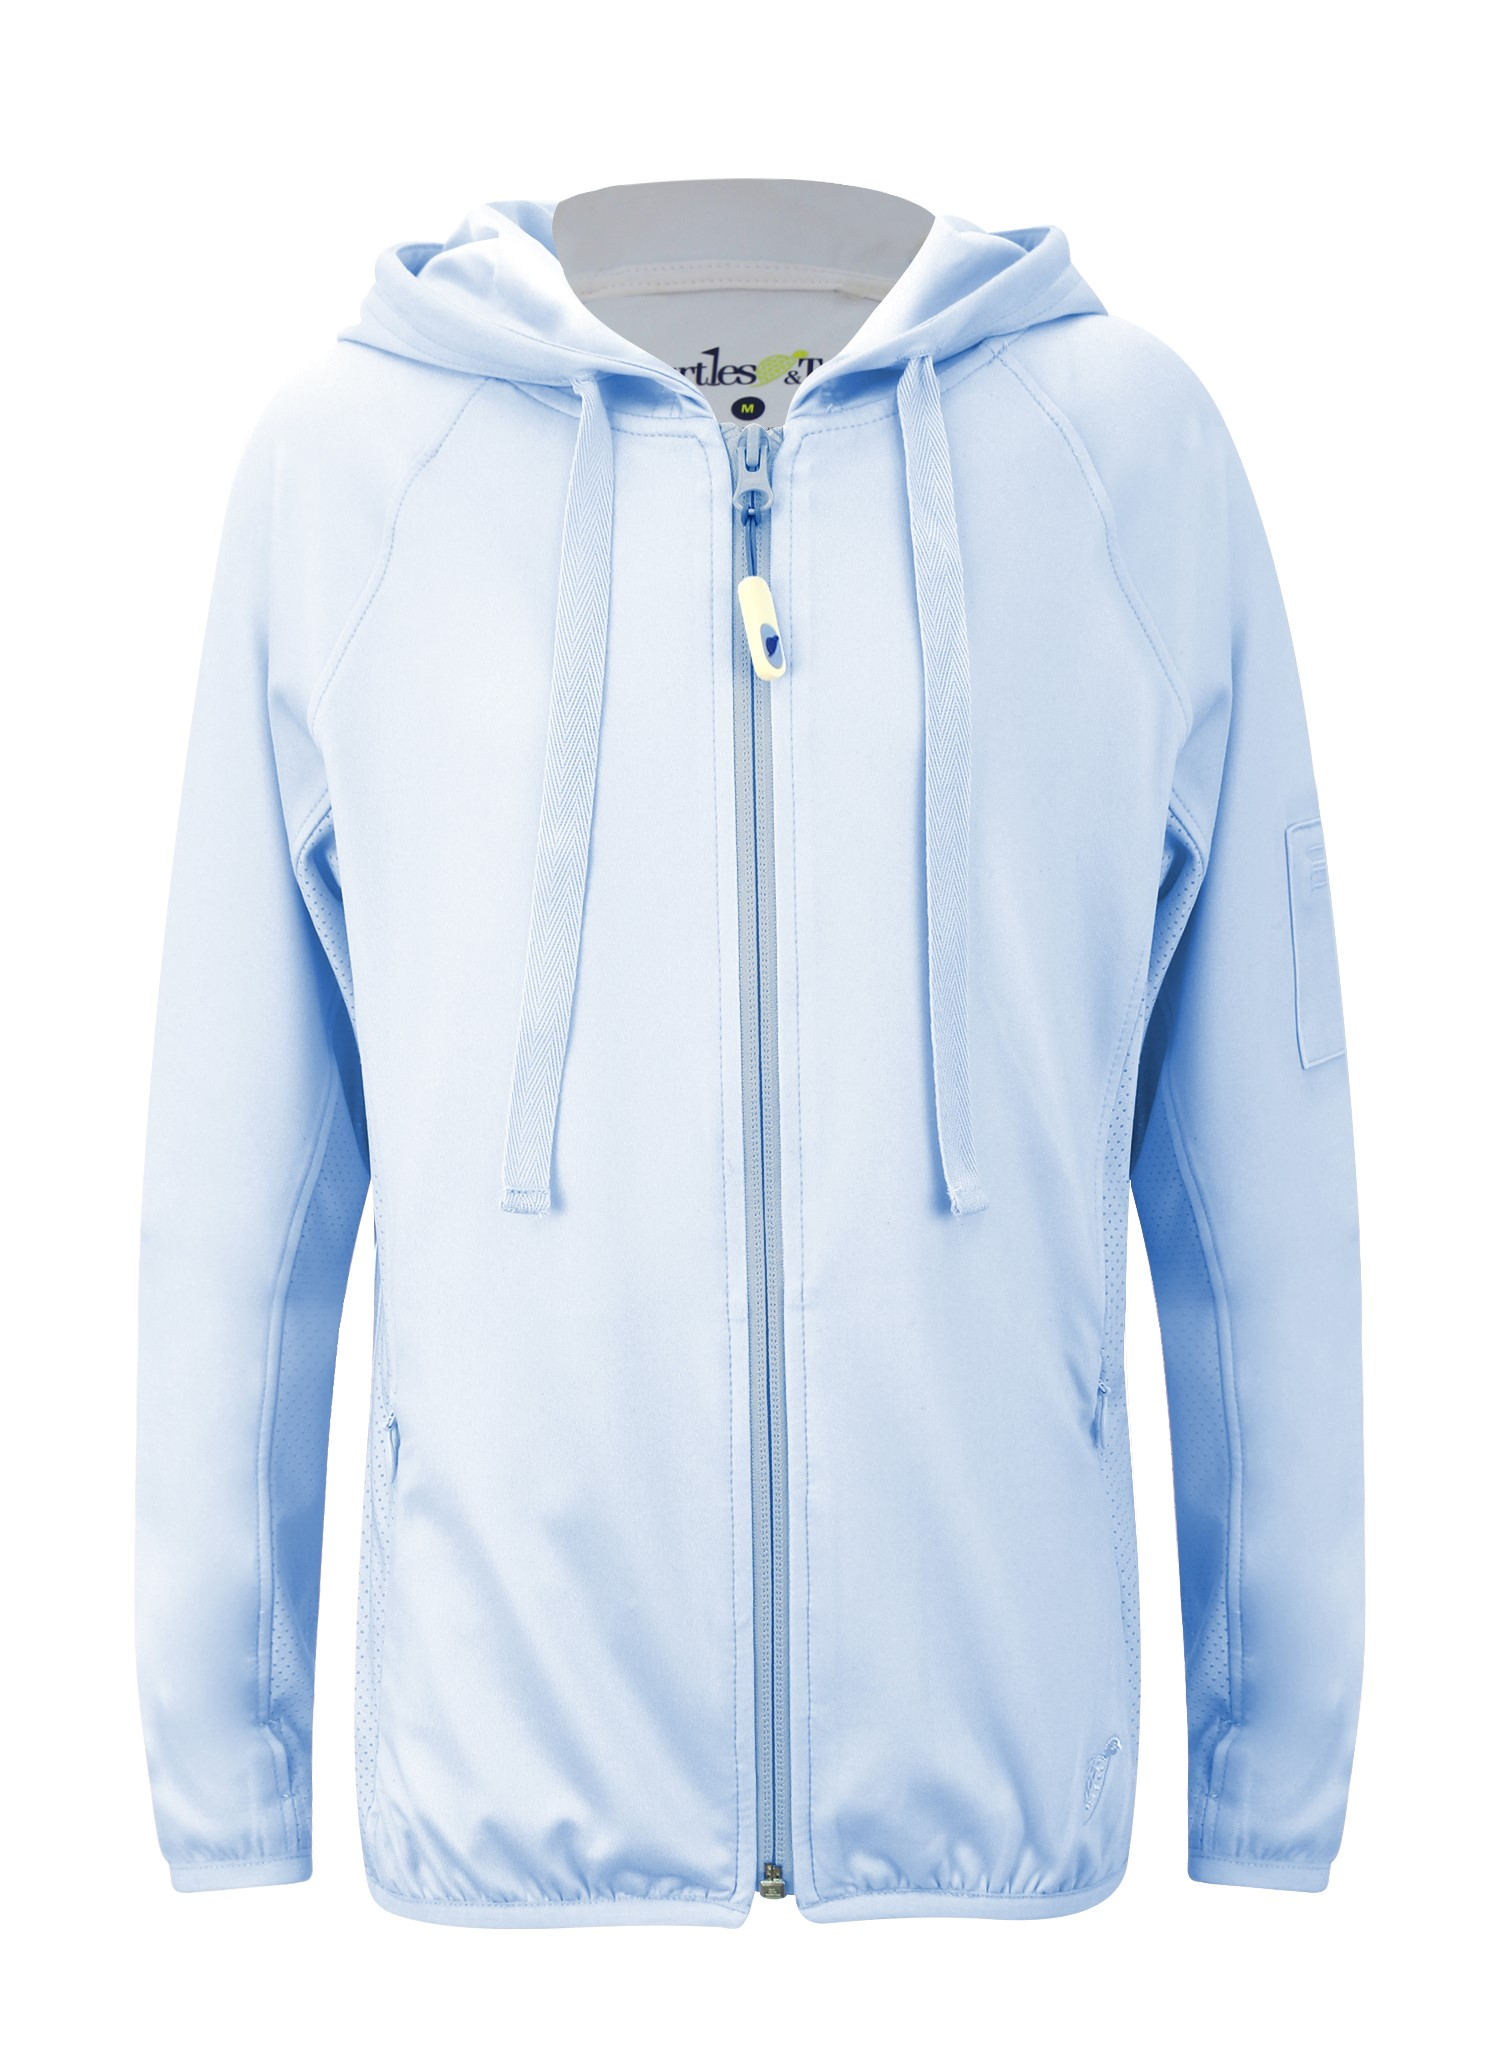 Blakely Girls Full Zip Jacket In Sky Blue